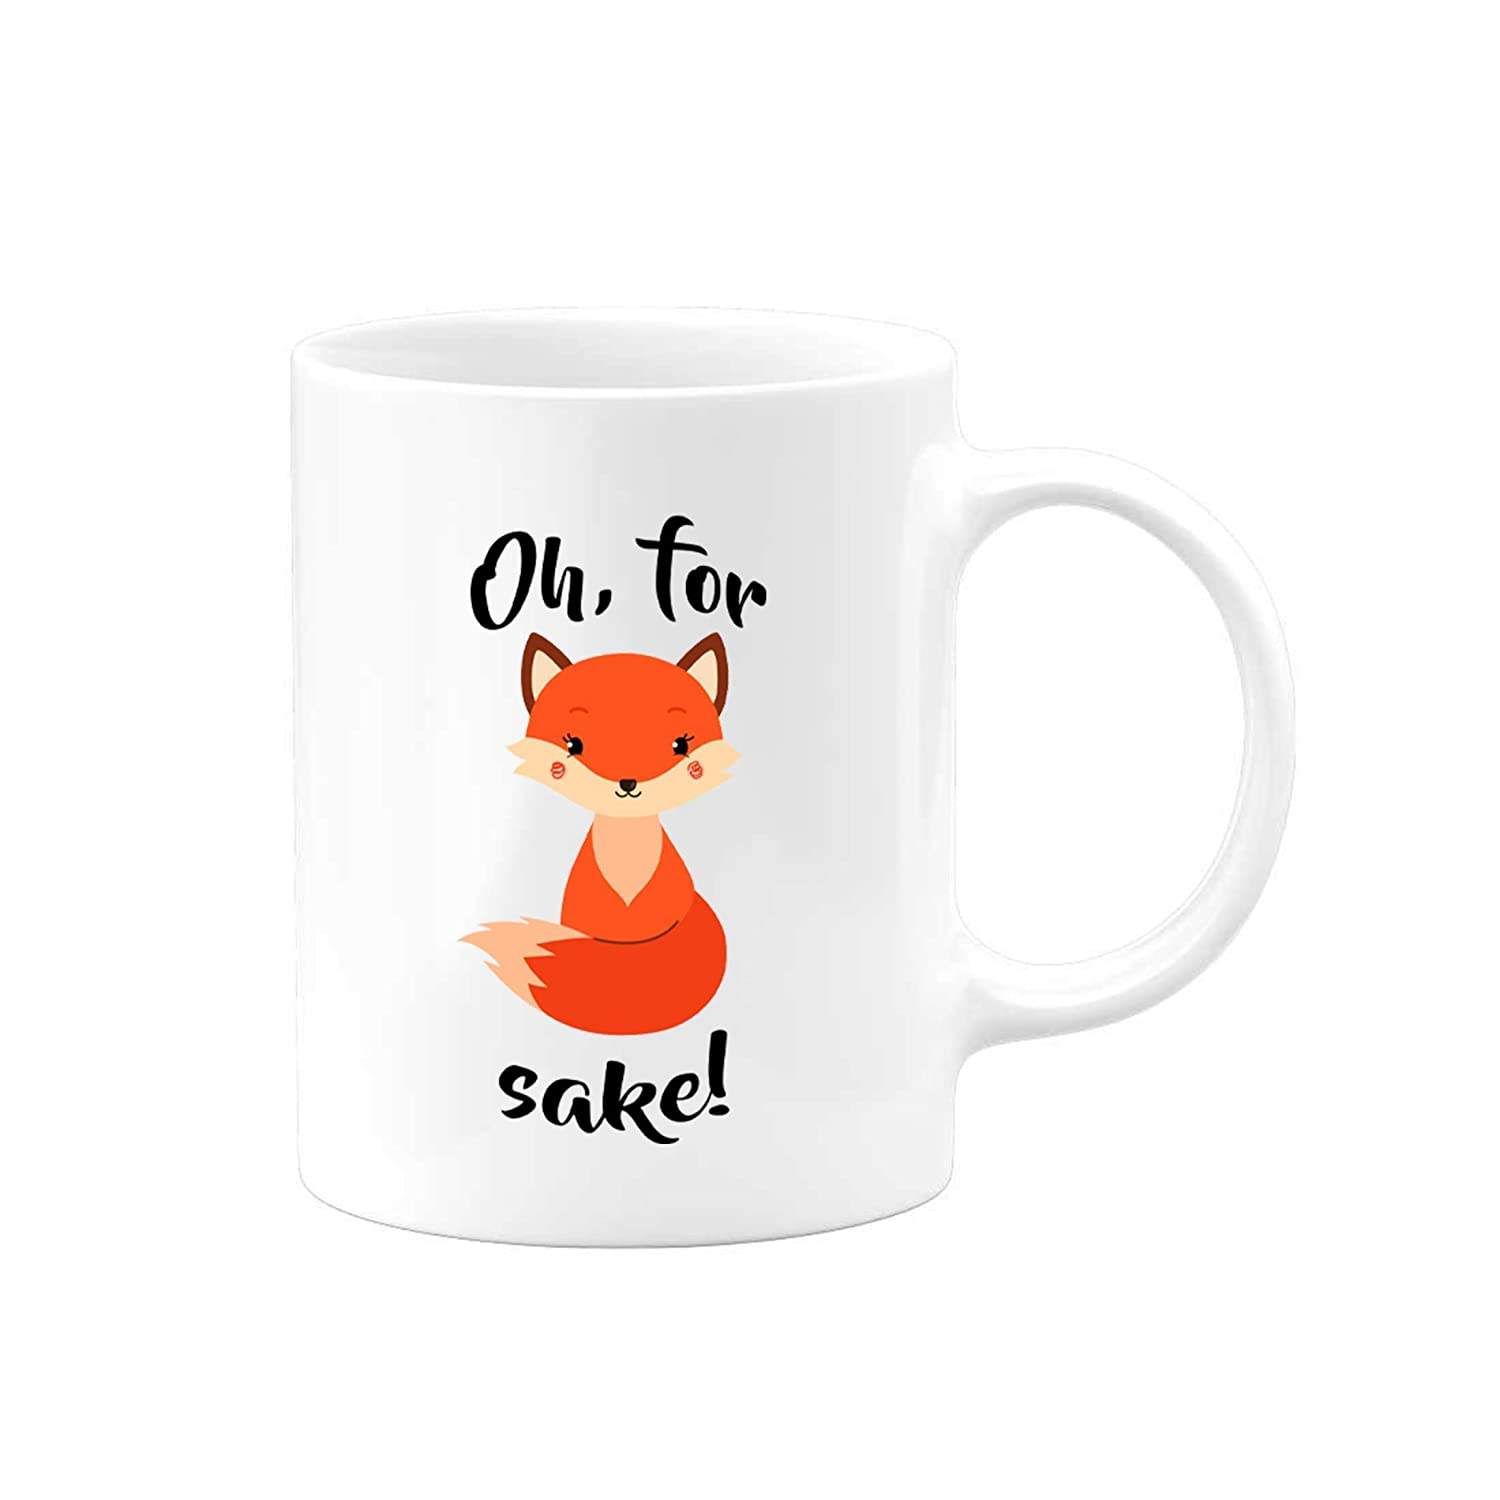 Humorous Saying Funny Pun Fox Mug Saying Coffee Cup 11 15 ounce ceramic Gift for Valentines Day to Make Them Laugh